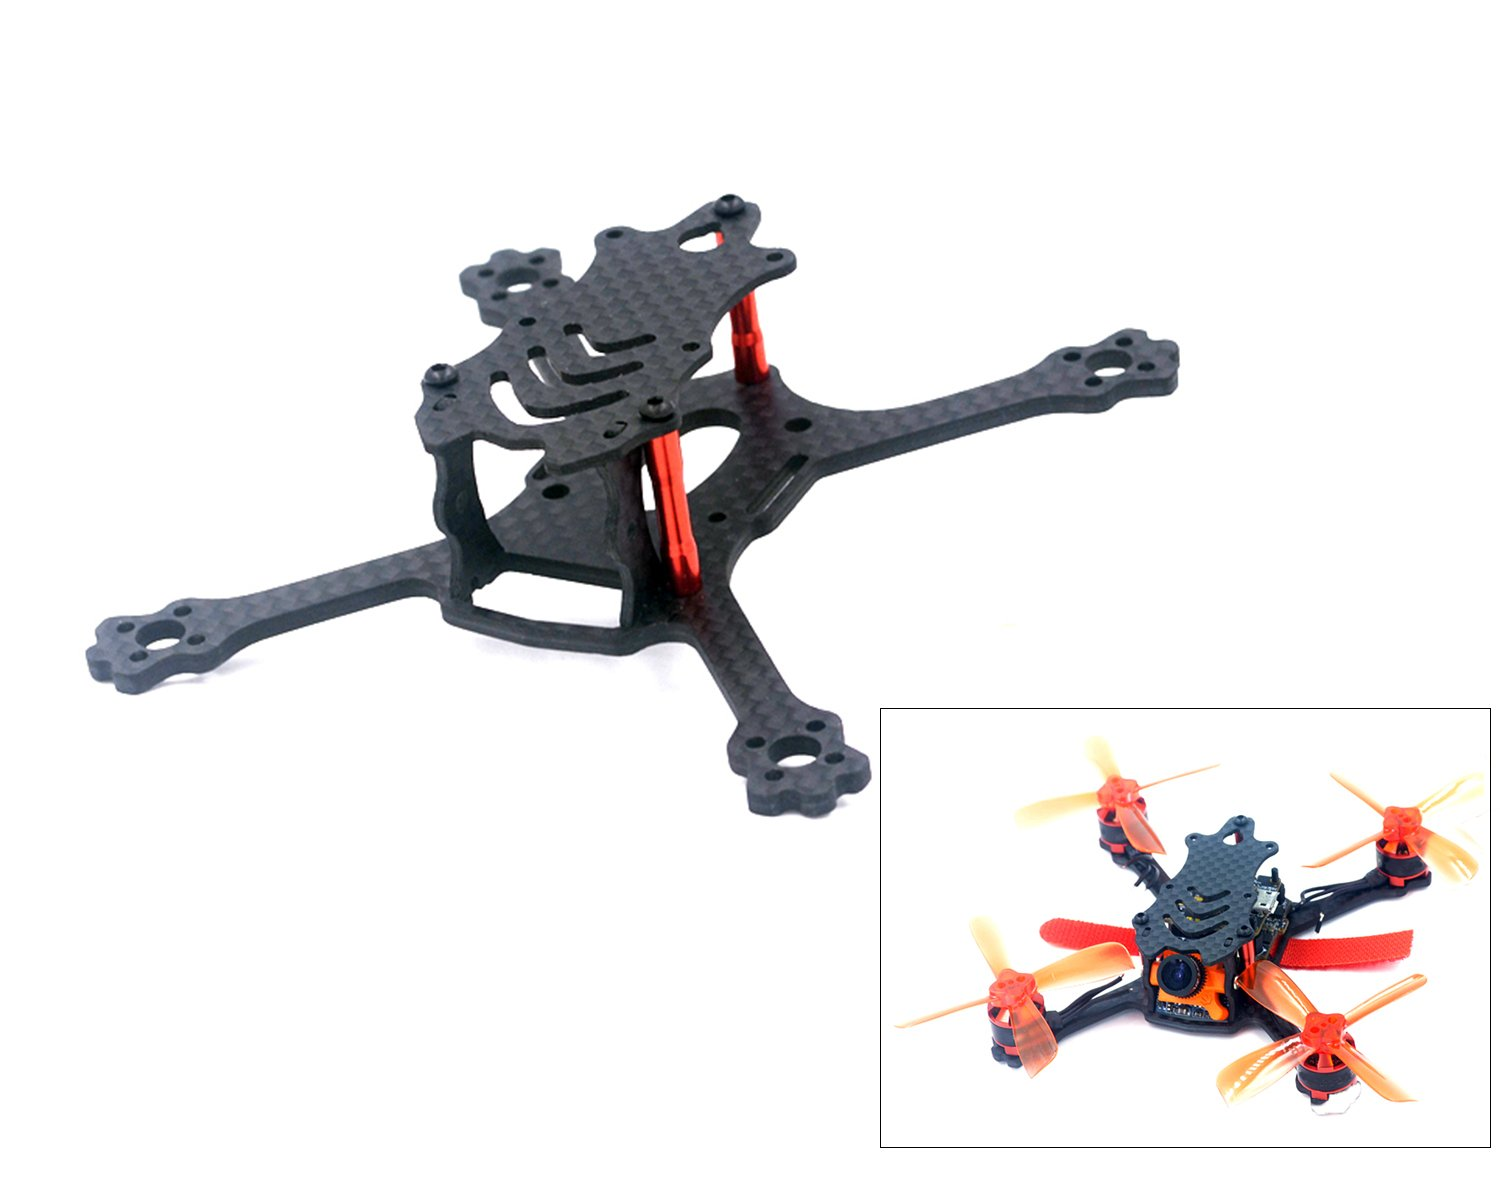 usmile ALFA-Genie110 110mm Stretch X Micro Carbon Fiber Quadcopter Frame Kit Mini quad fpv racing drone with 2.5mm Arm support for Runcam Micro Swift Micro Sparrow FPV camera